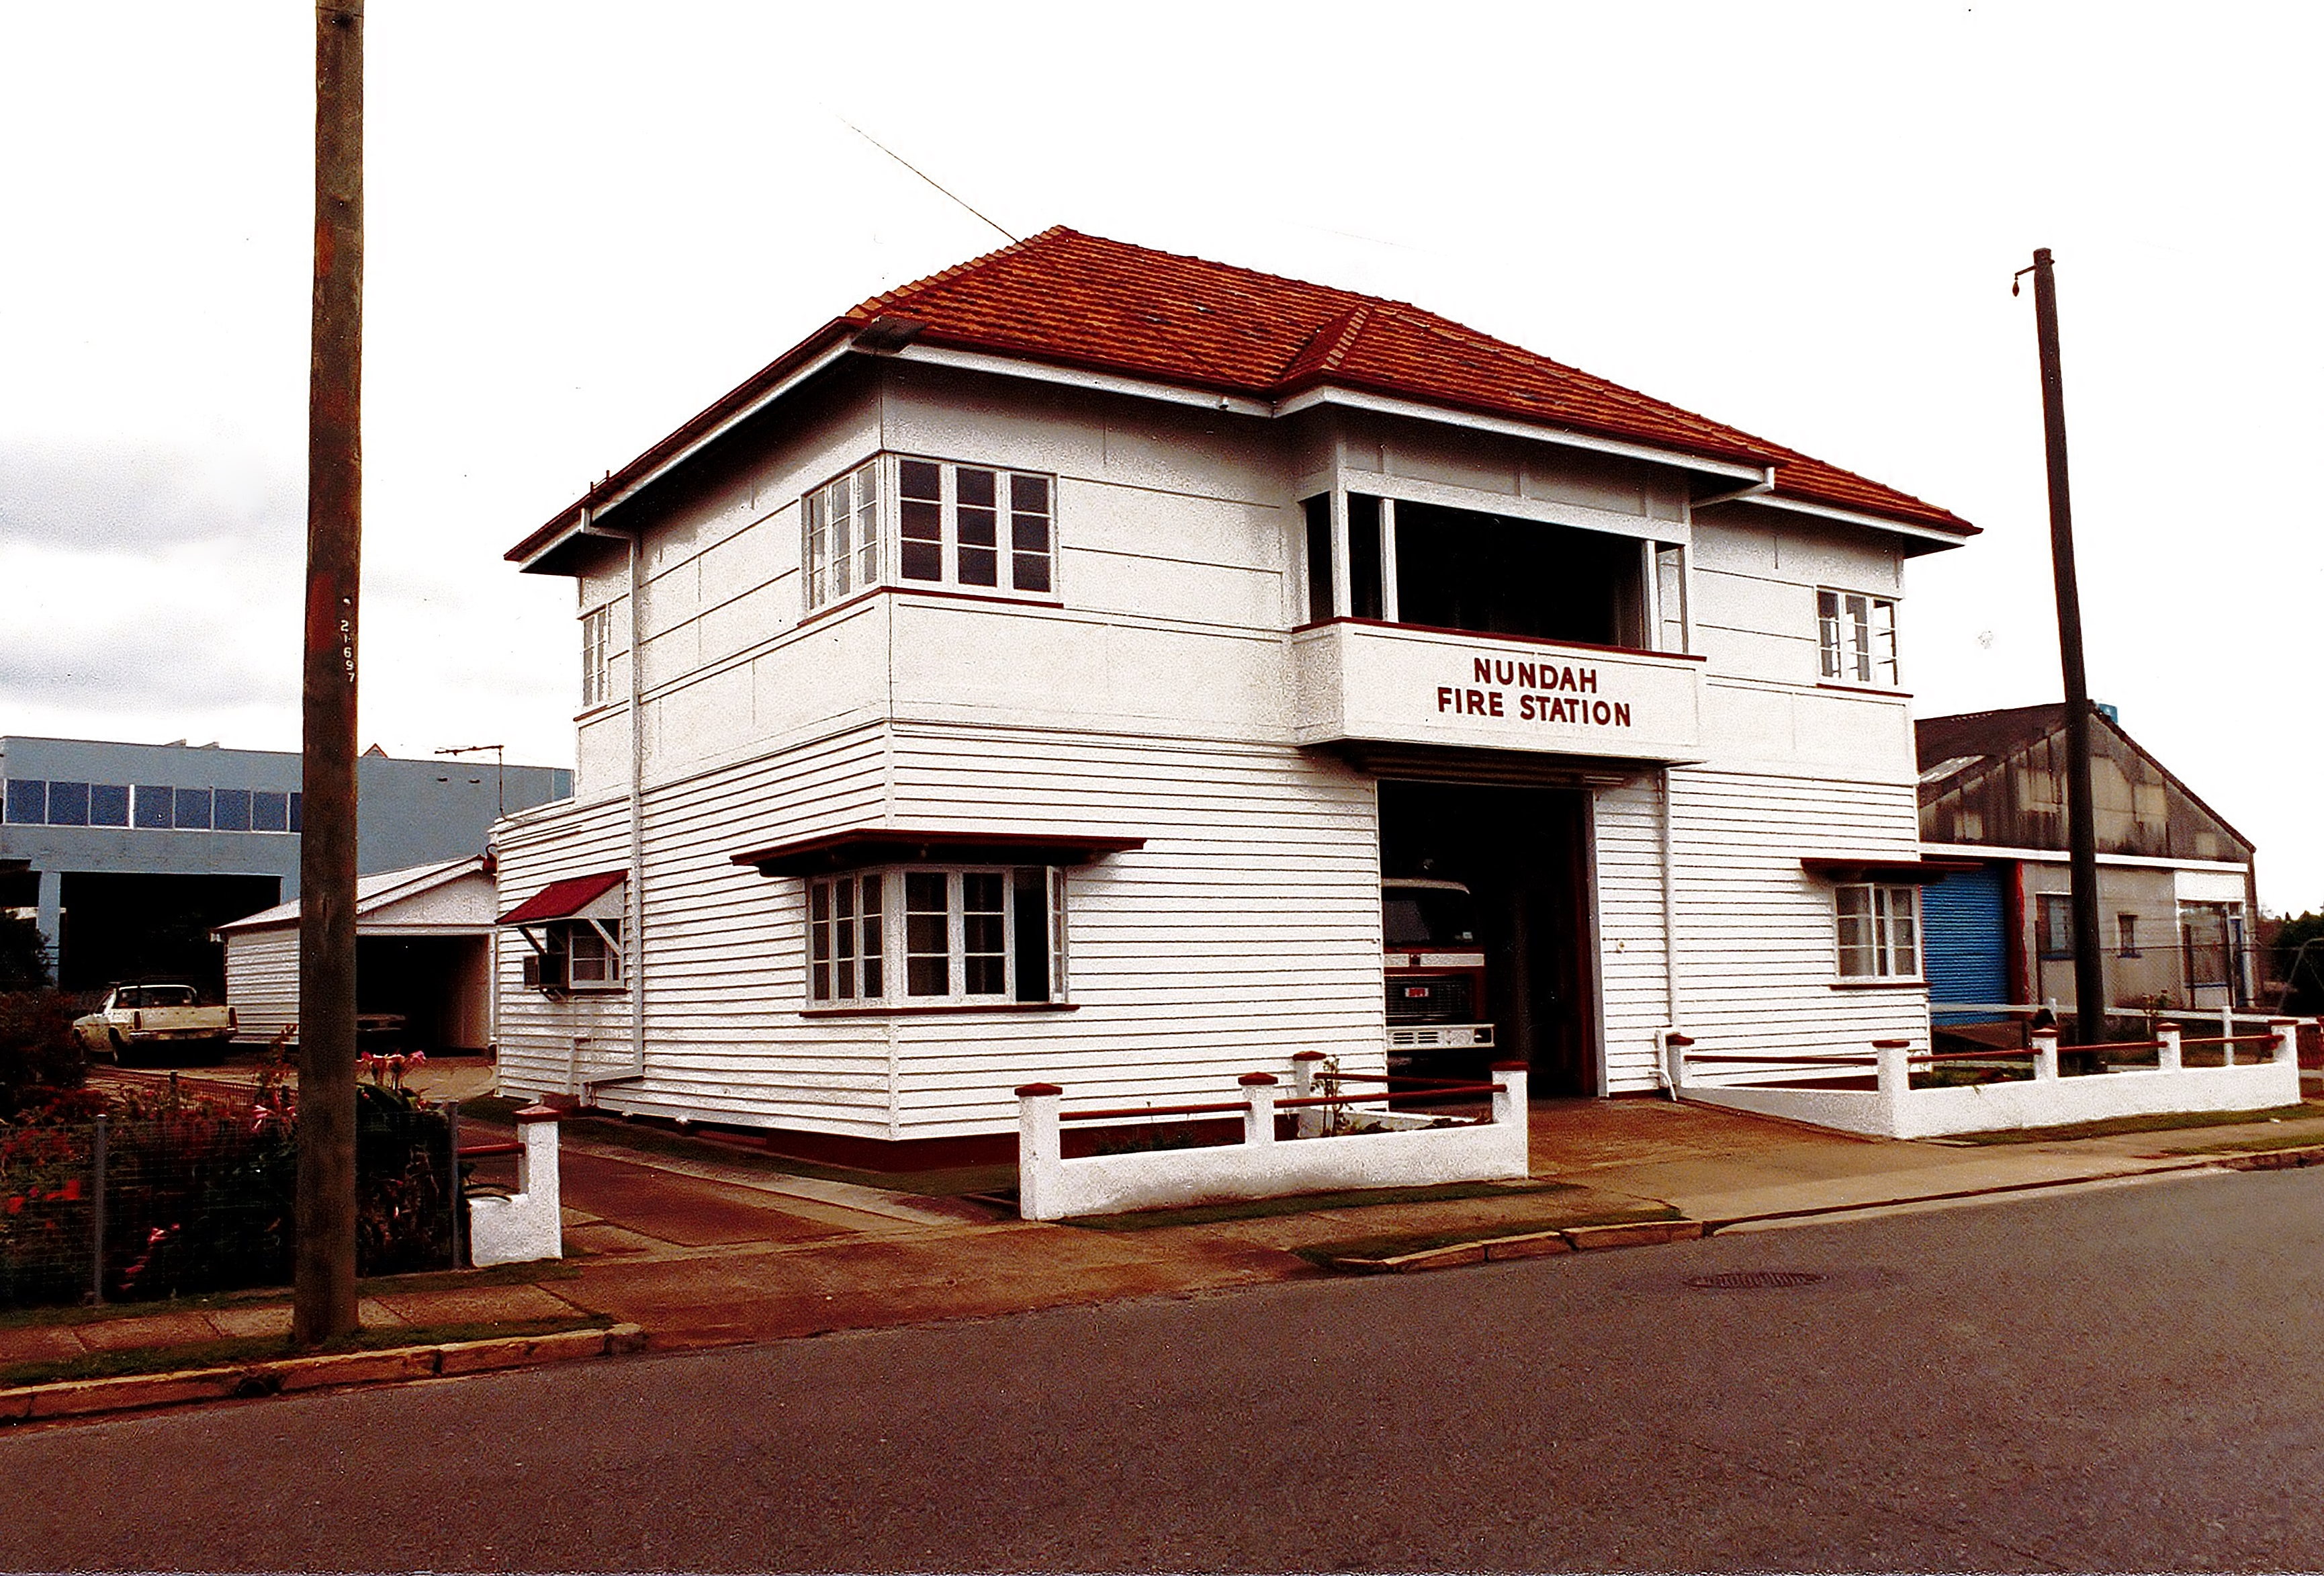 Nundah Fire Station